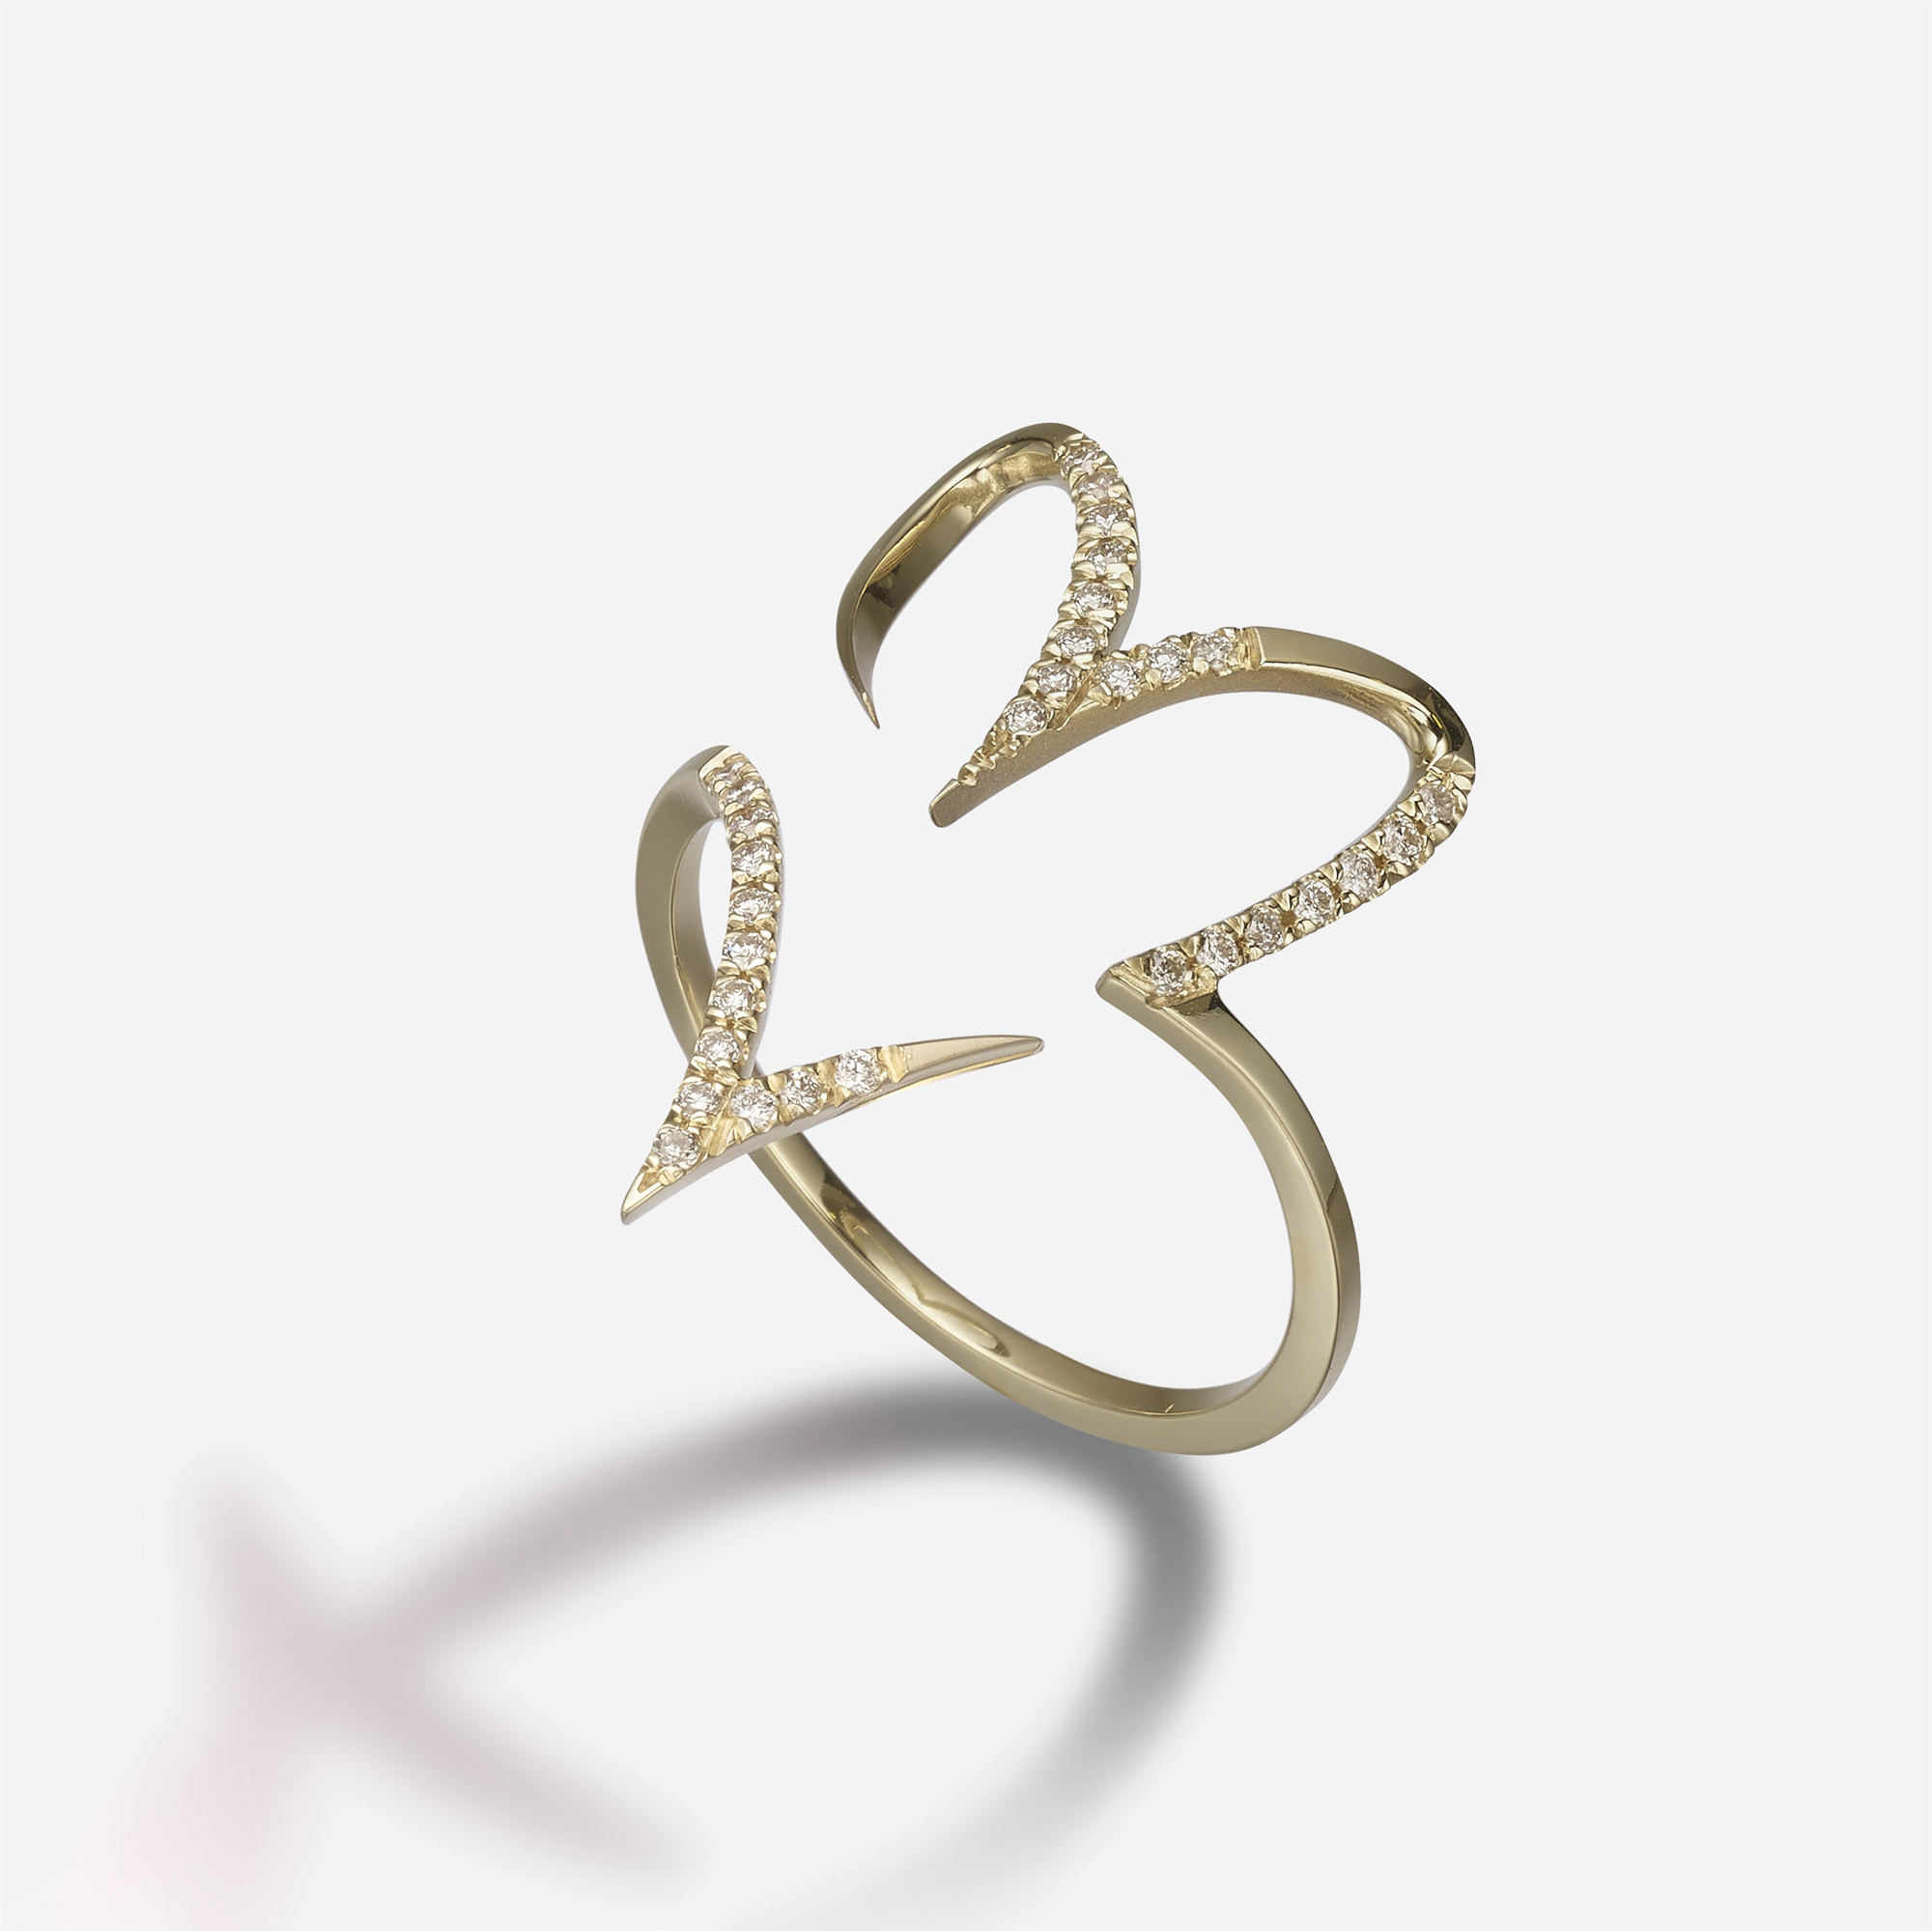 Cursive Heart | Pavé Diamonds Inside Most Up To Date Pavé Hearts Band Rings (View 16 of 25)